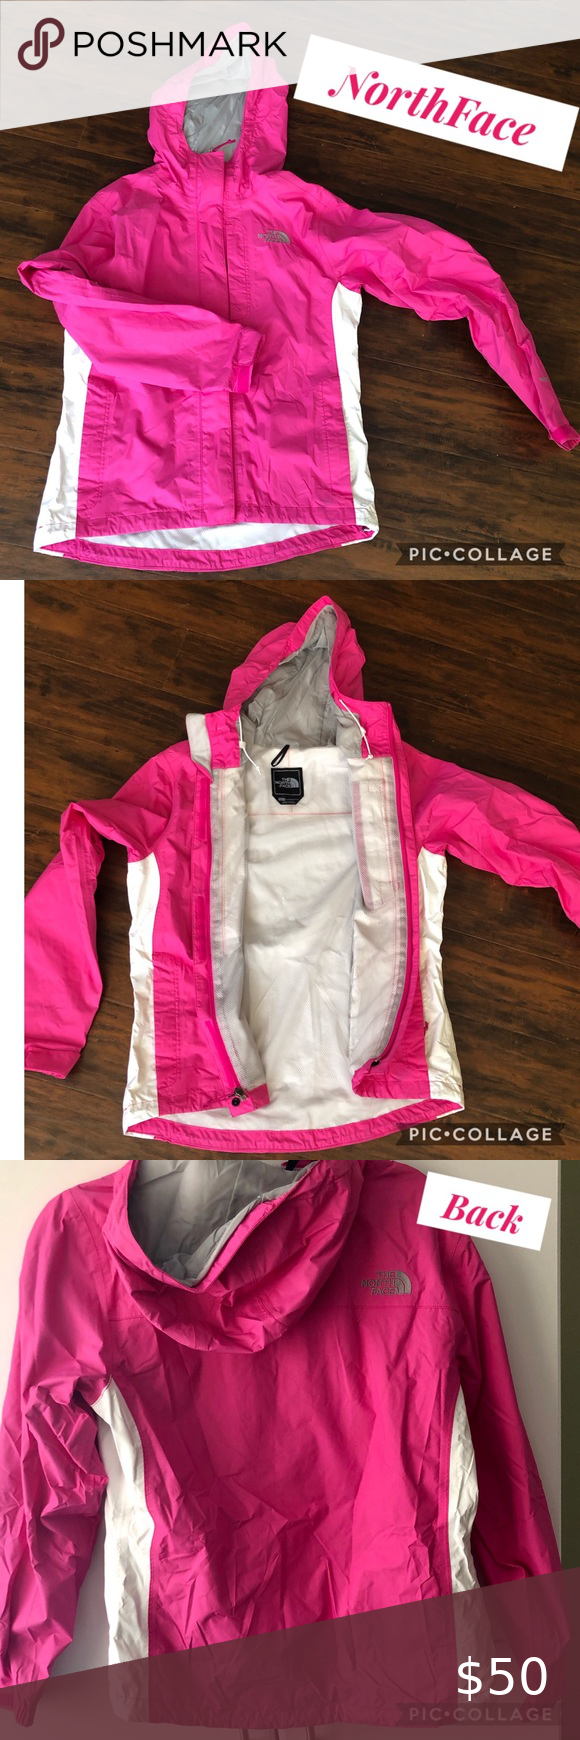 Hp Hot Pink White Northface Jacket North Face Jacket Womens Black Jacket Hot Pink White [ 1740 x 580 Pixel ]